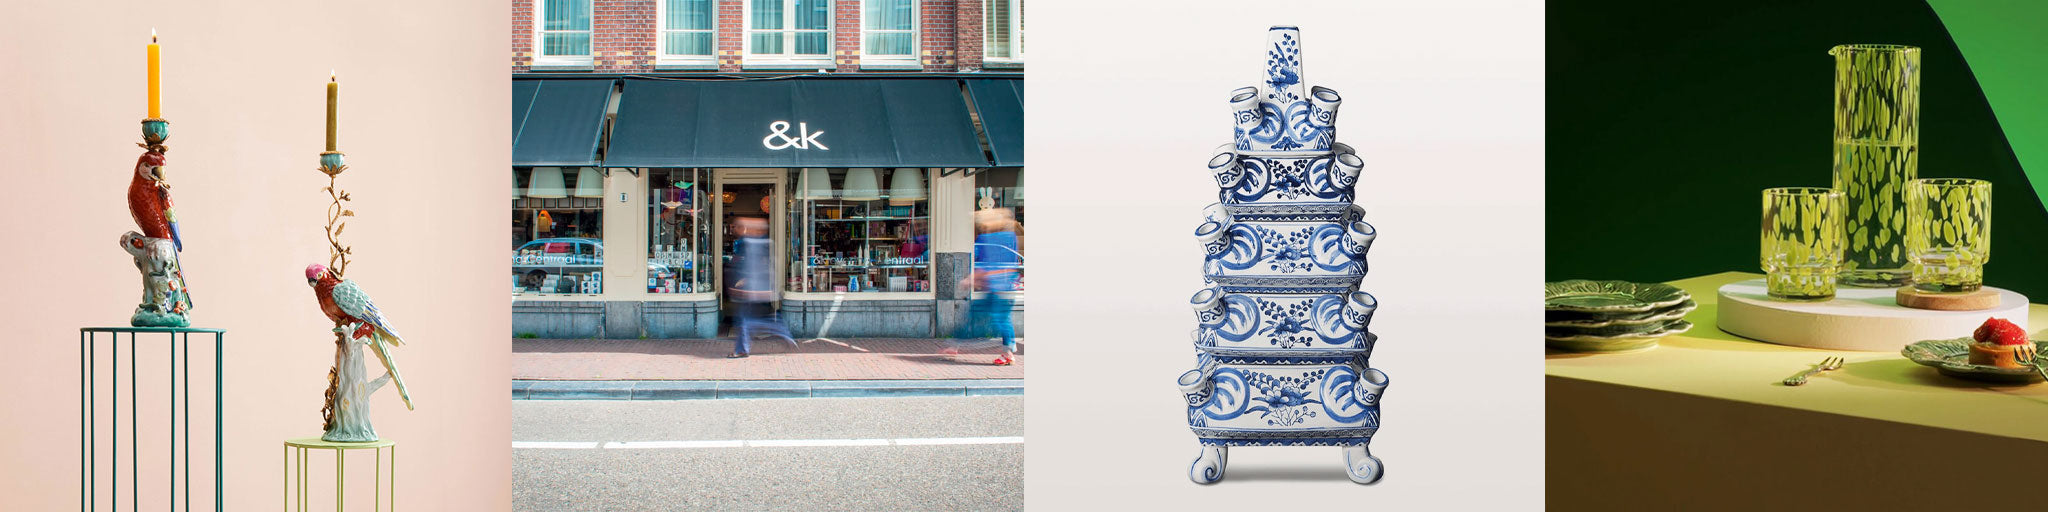 Leading UK stockist &Klevering. Quirky Dutch design brand &K Amsterdam. Klevering UK stockist. Plates, vases, candle holders and tableware from &K